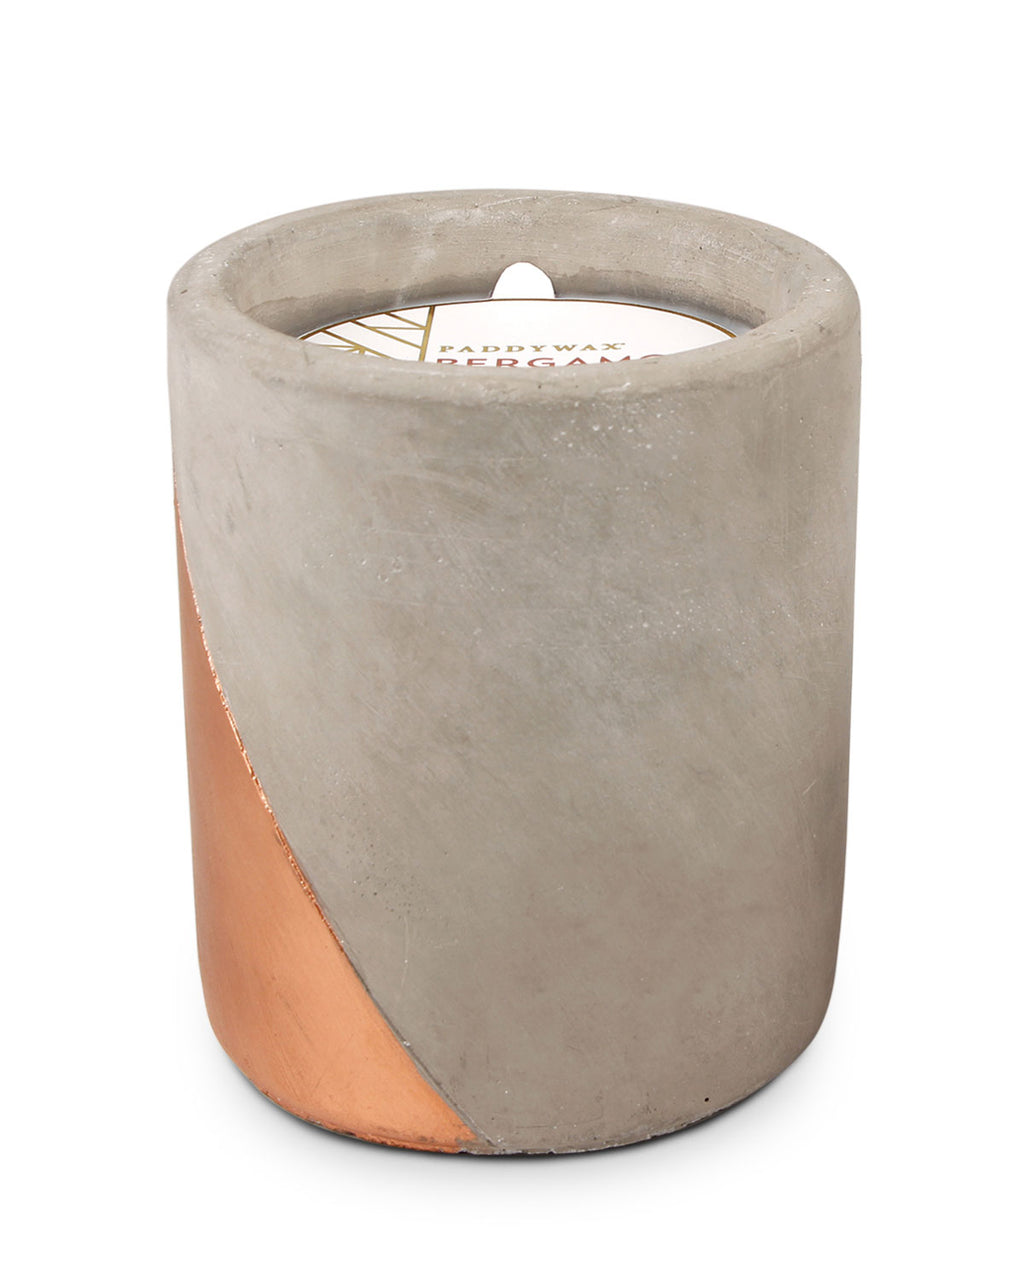 Bergamot & Mahogany Large Concrete Candle, 12 oz./340g - Whiskey & Leather